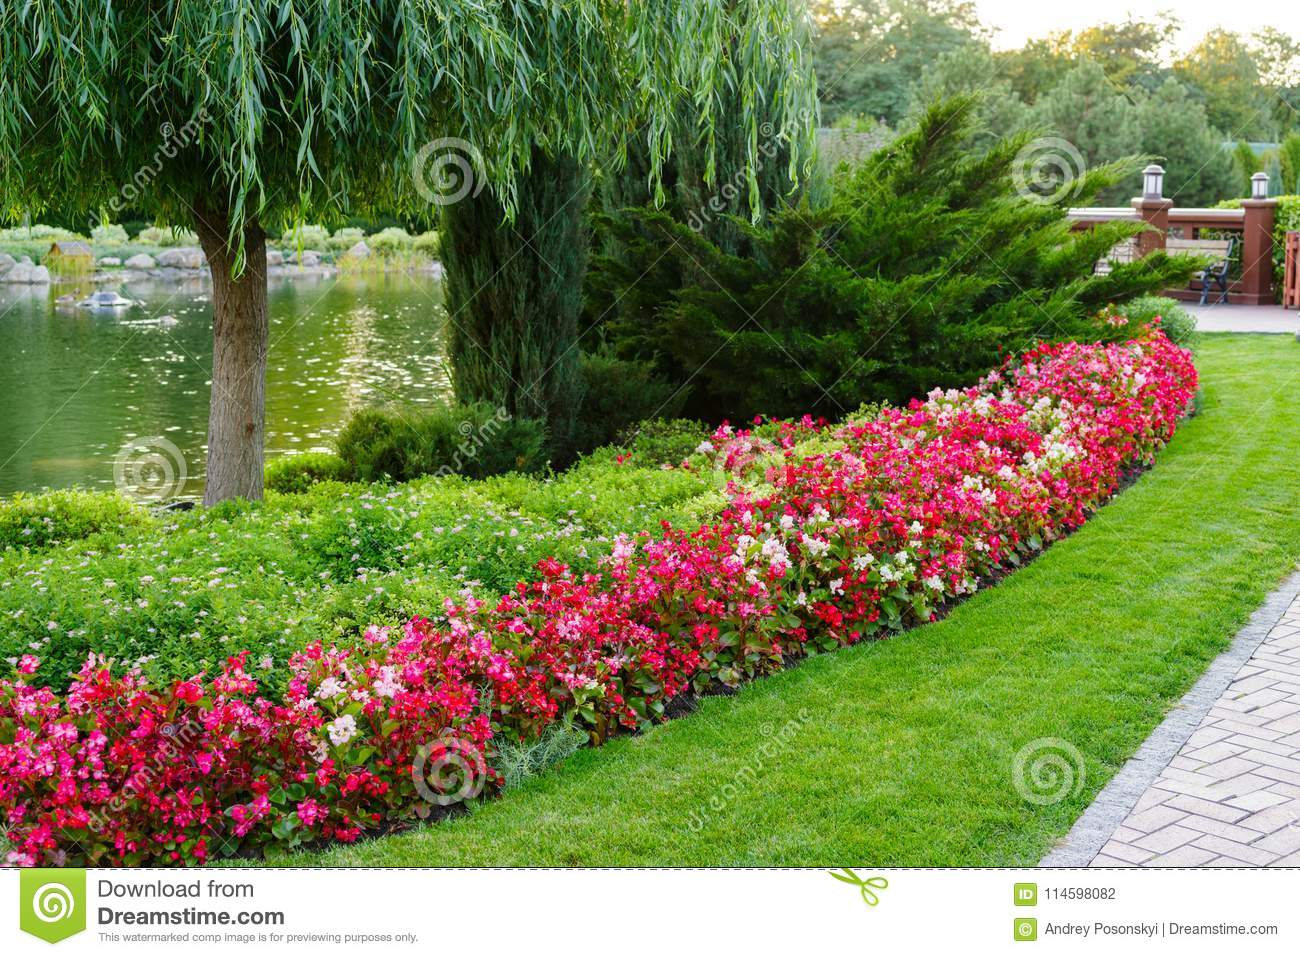 Flowers And Bushes In A Landscape Park Stock Photo Image Of